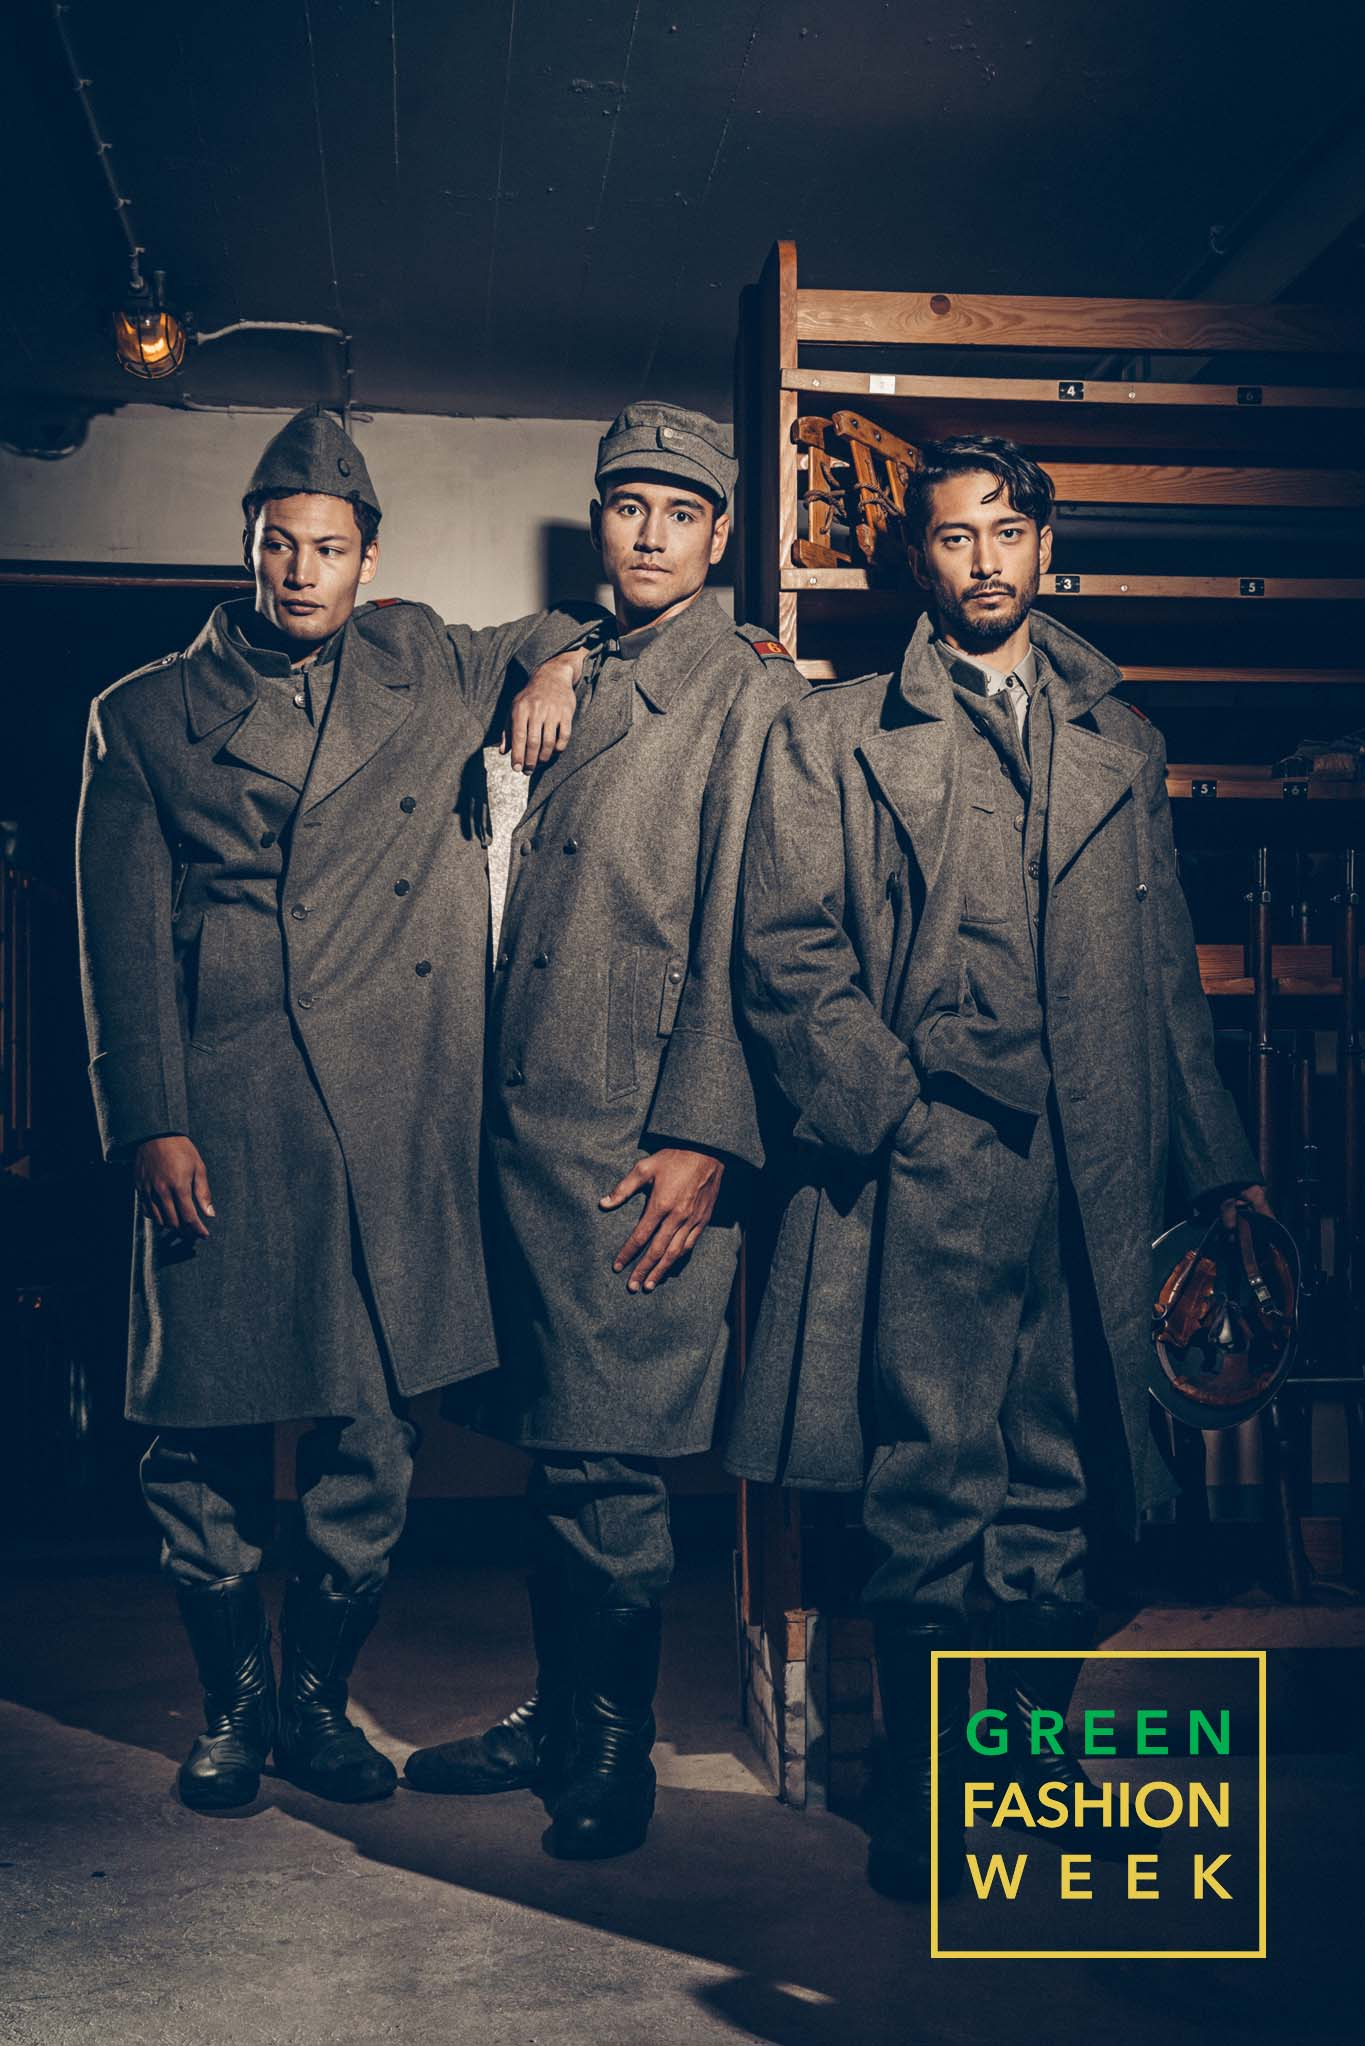 Models Tom Van Hauwaert, Mark Chanloung and Samuele Carenzi dressed with Museum's World War II uniforms. Photo Credit: Vittorio La Fata | www.vittoriolafata.it